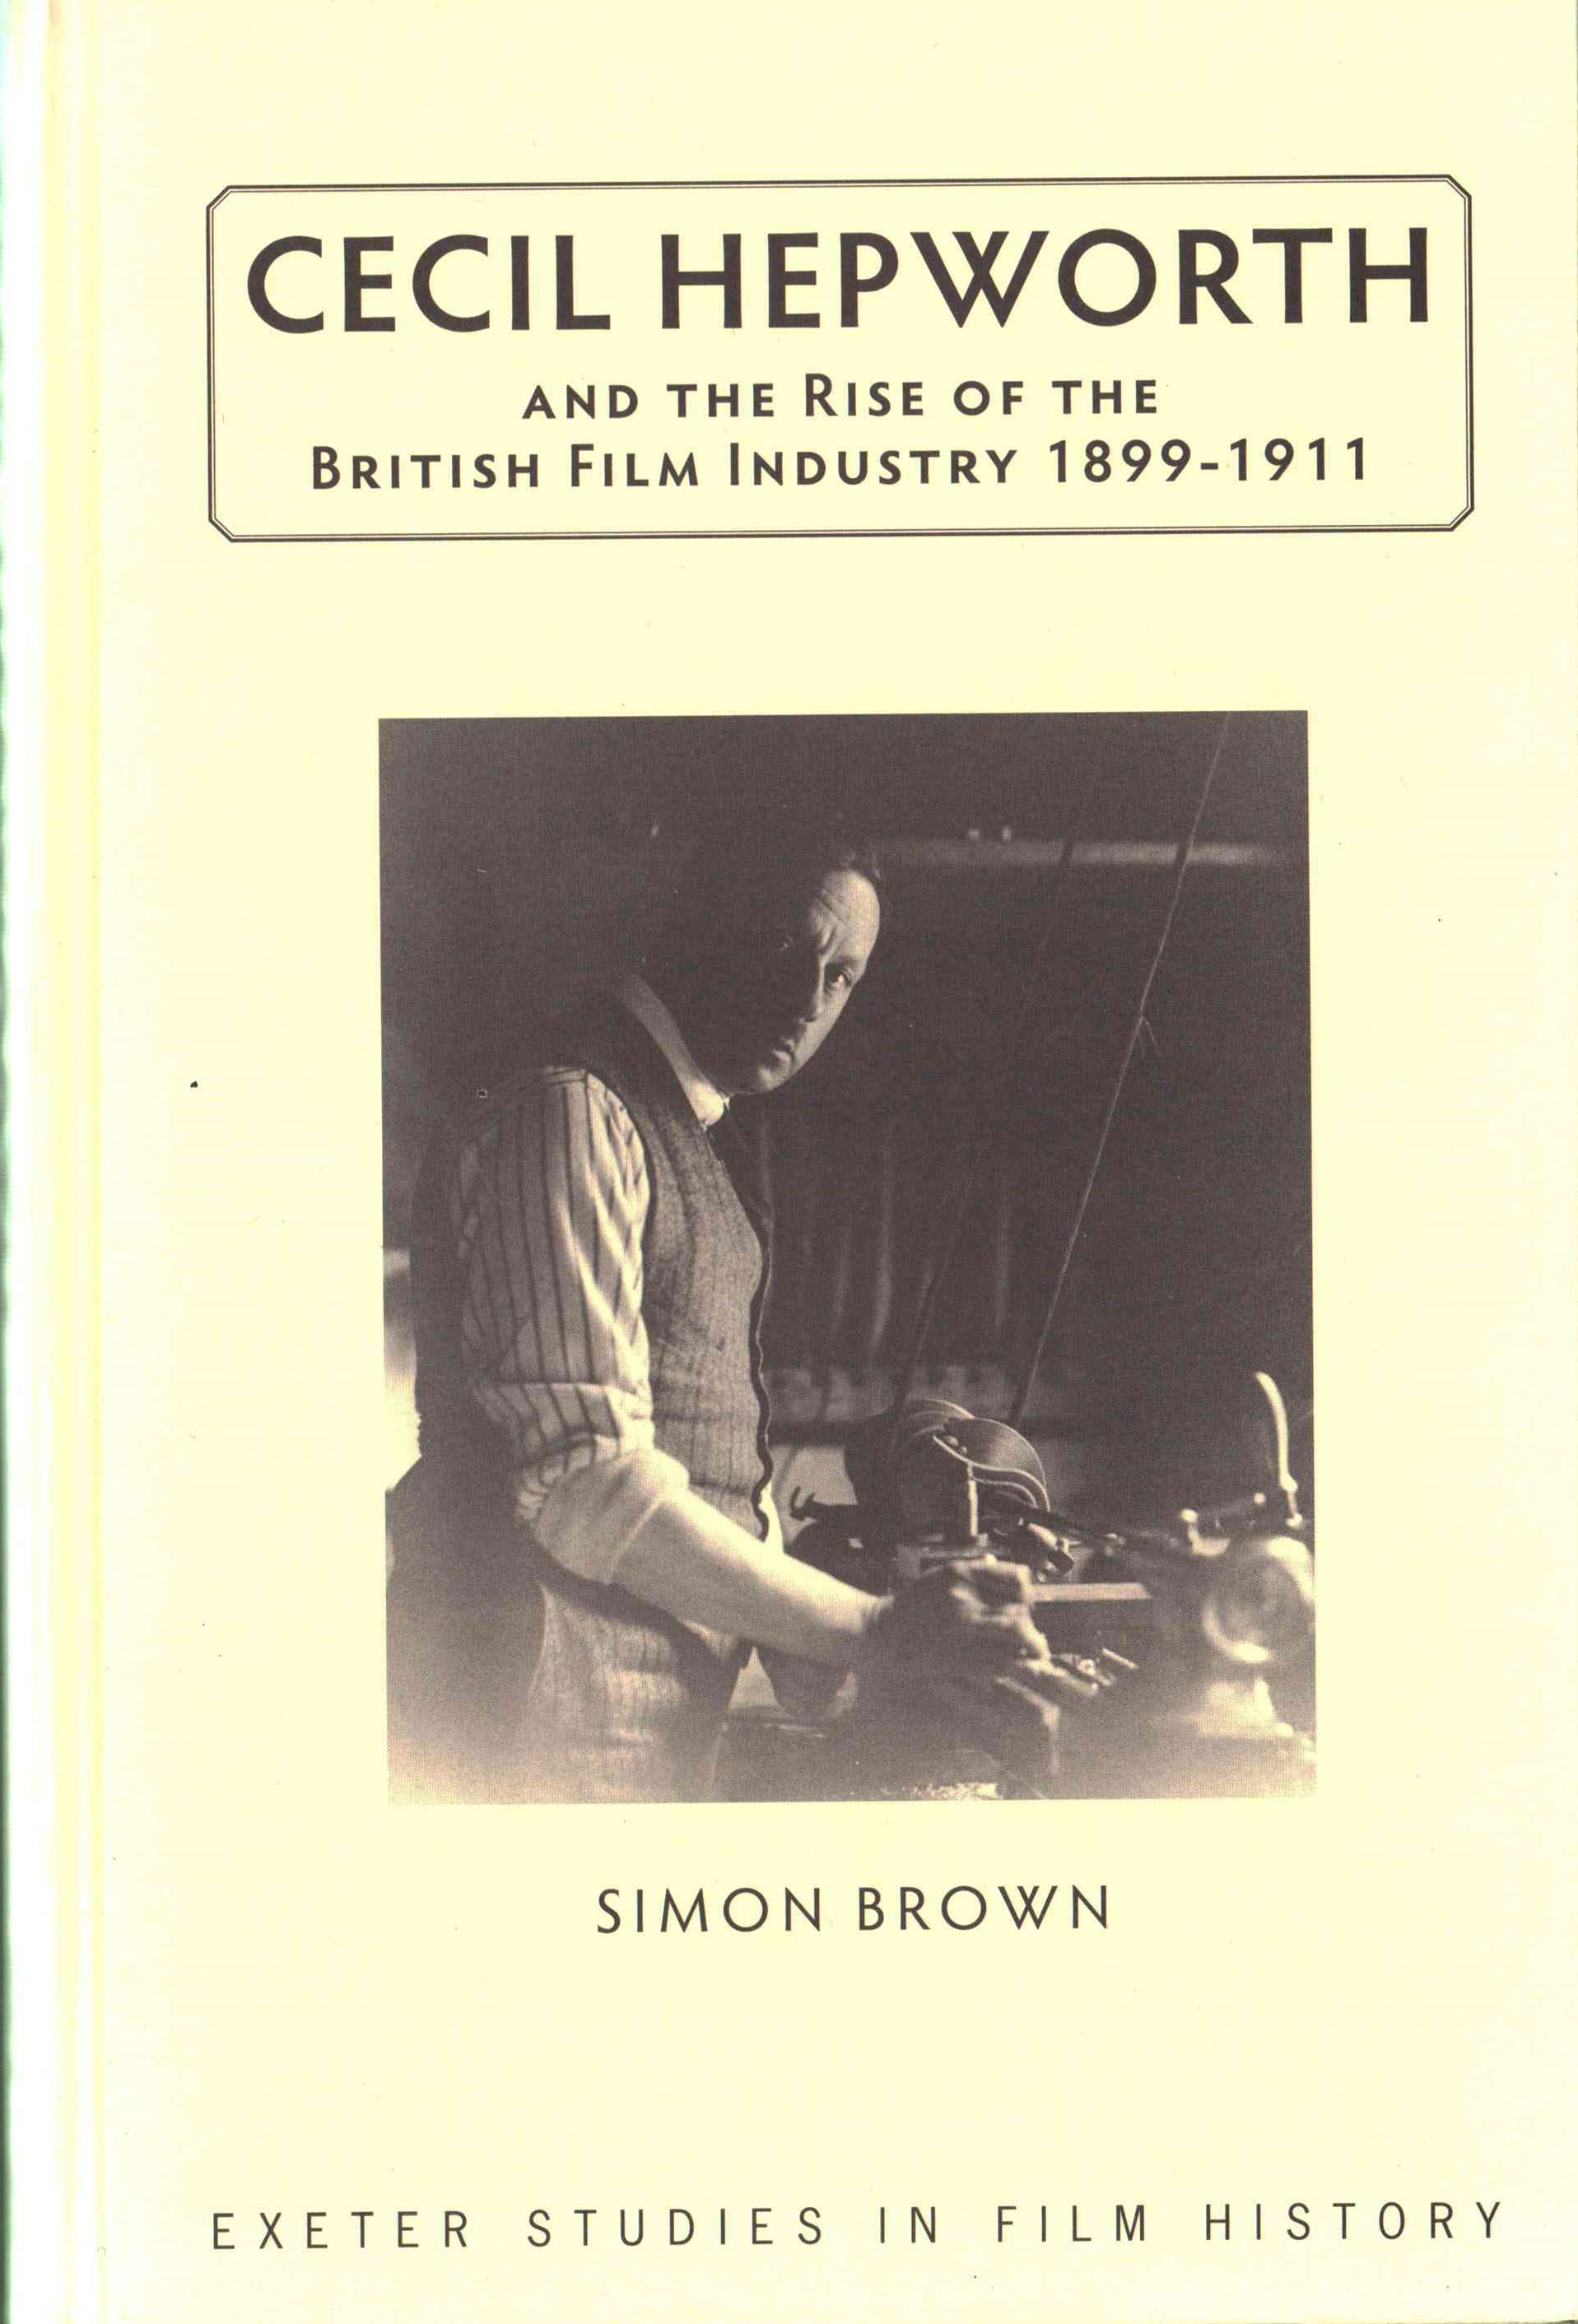 Cecil Hepworth and the Rise of the British Film Industry 1899-1911